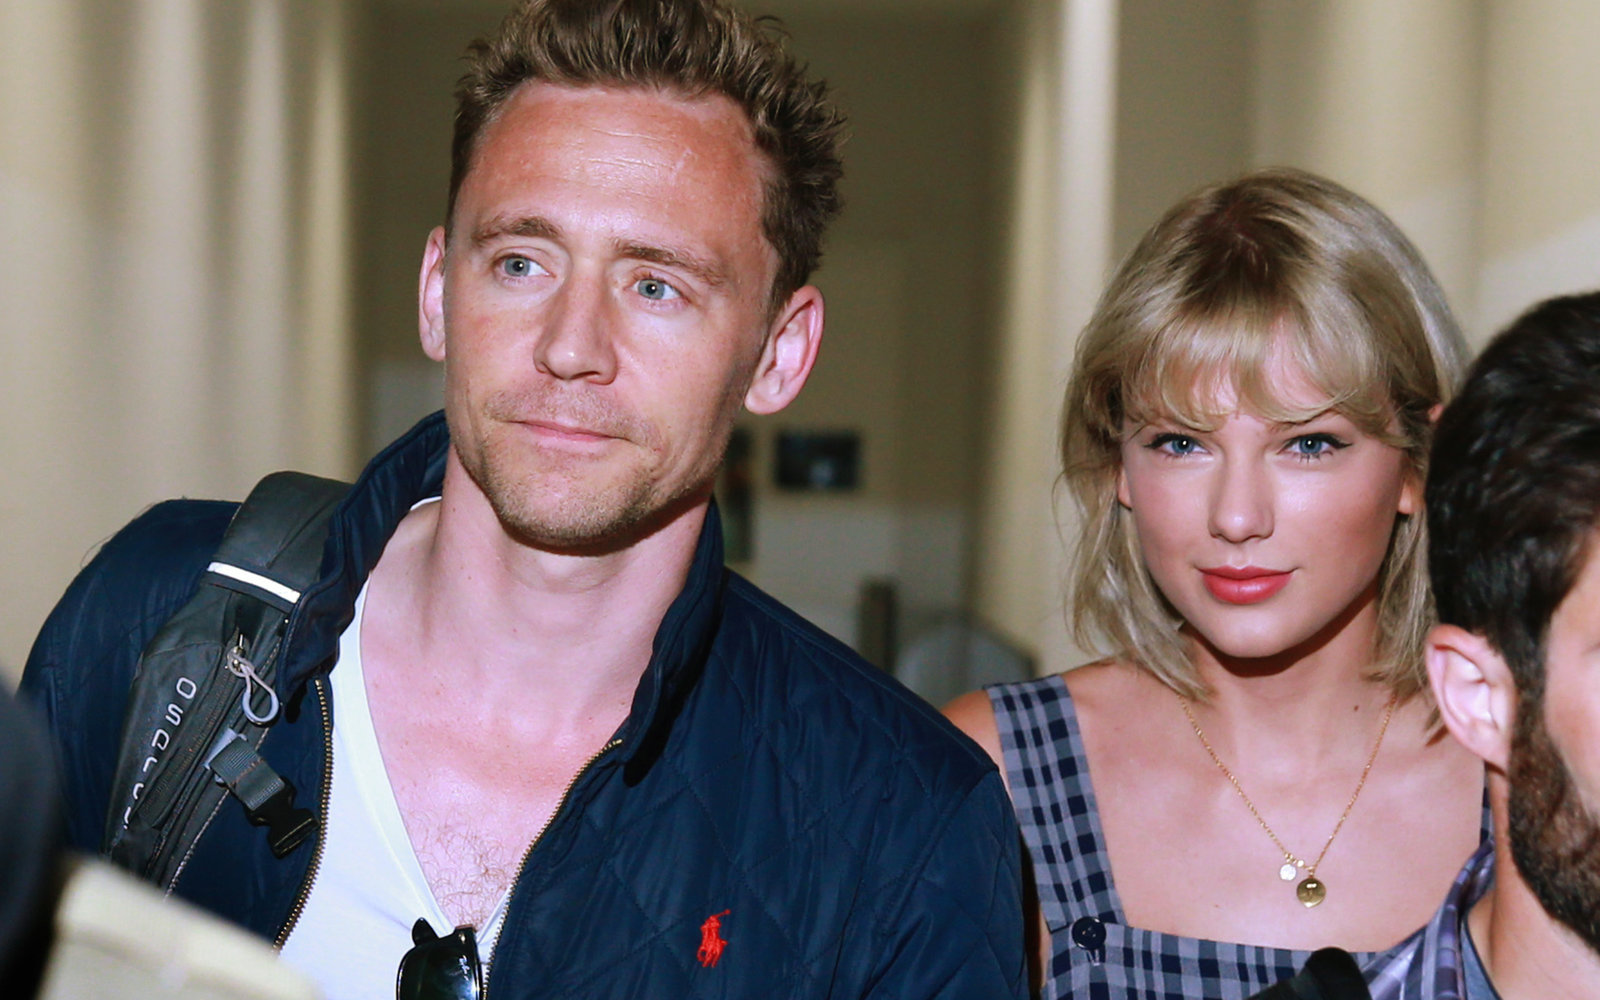 Tom Hiddleston and Taylor Swift in Australia